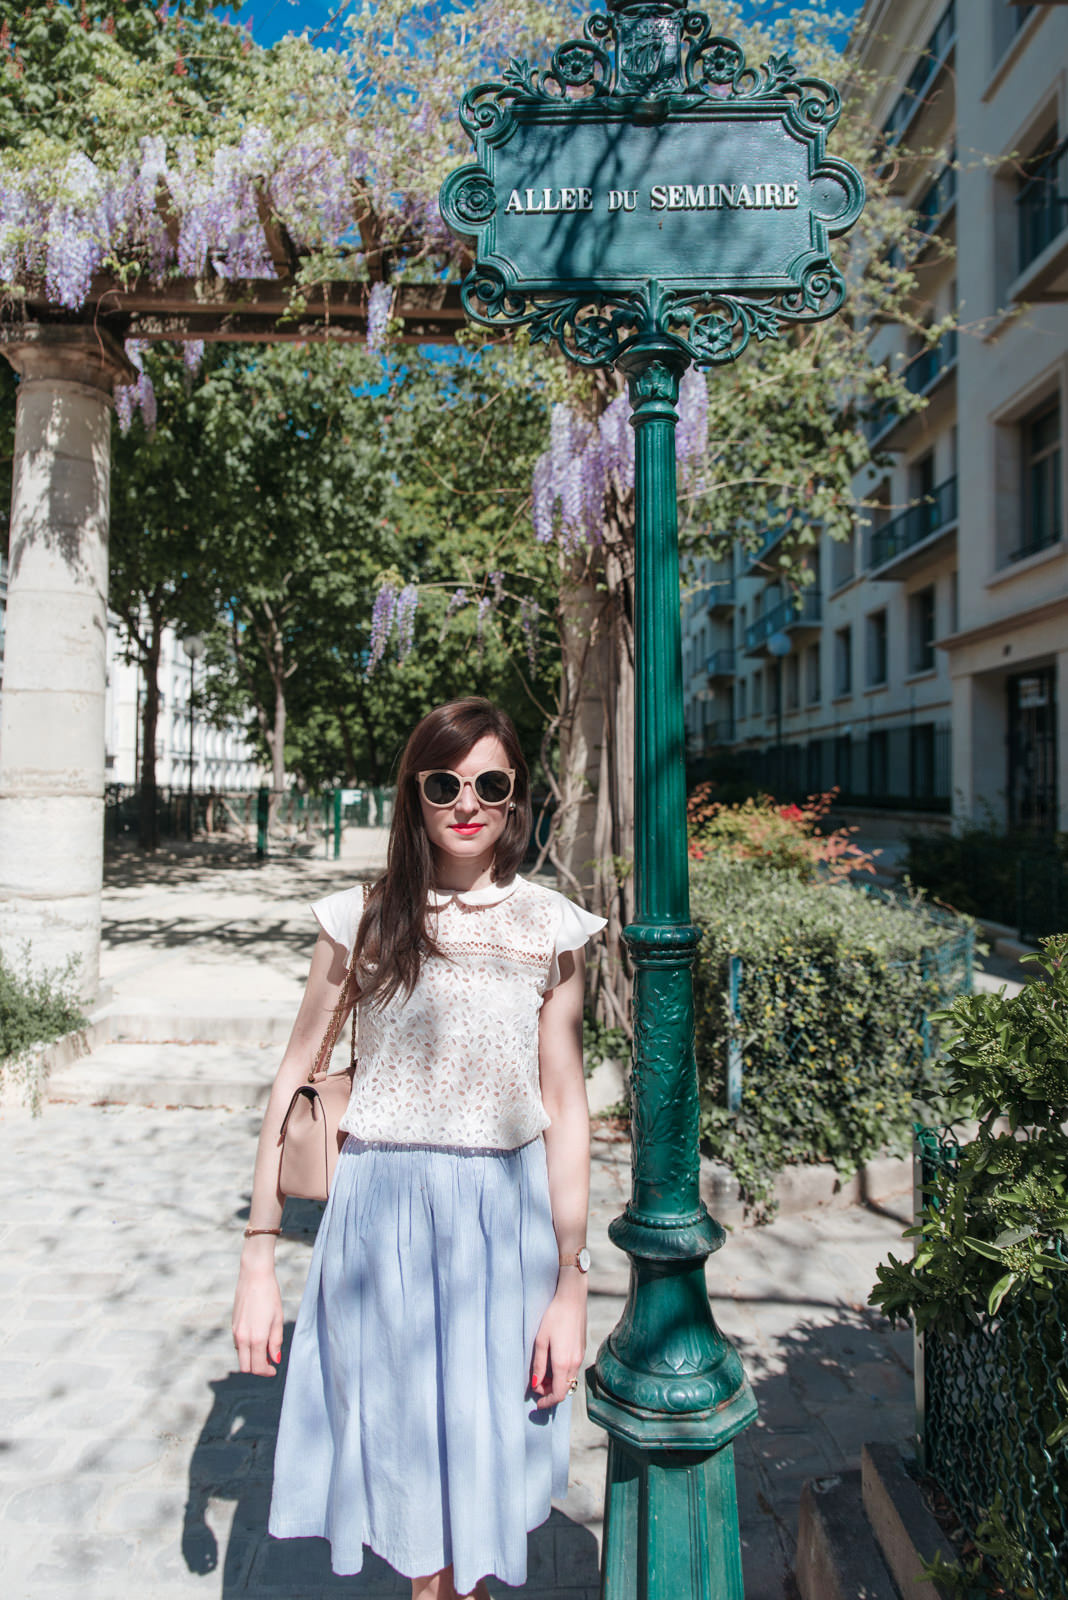 Blog-Mode-And-The-City-Looks-Allee-du-seminaire